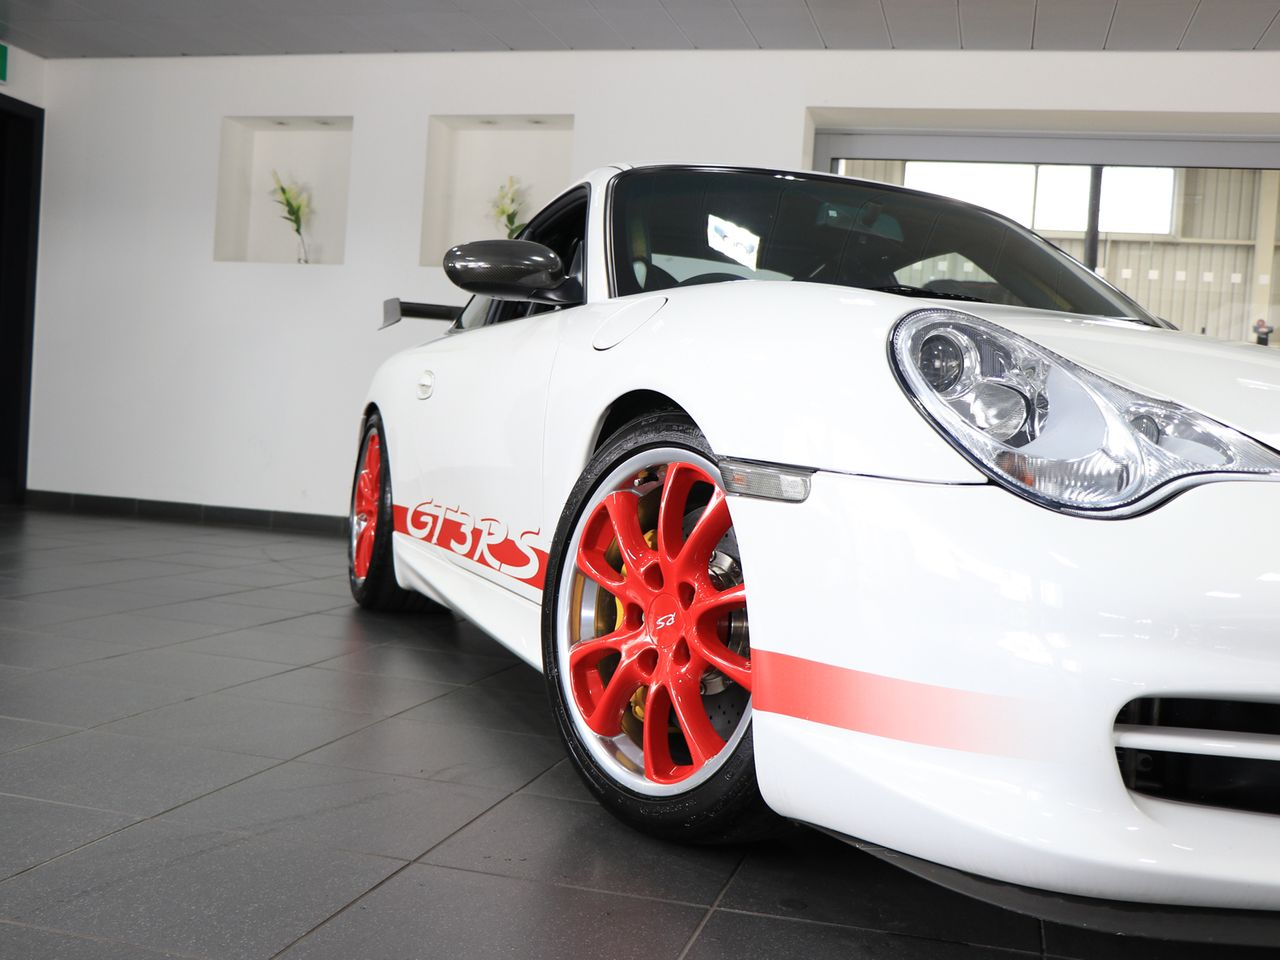 911 (996) GT3 RS image 37